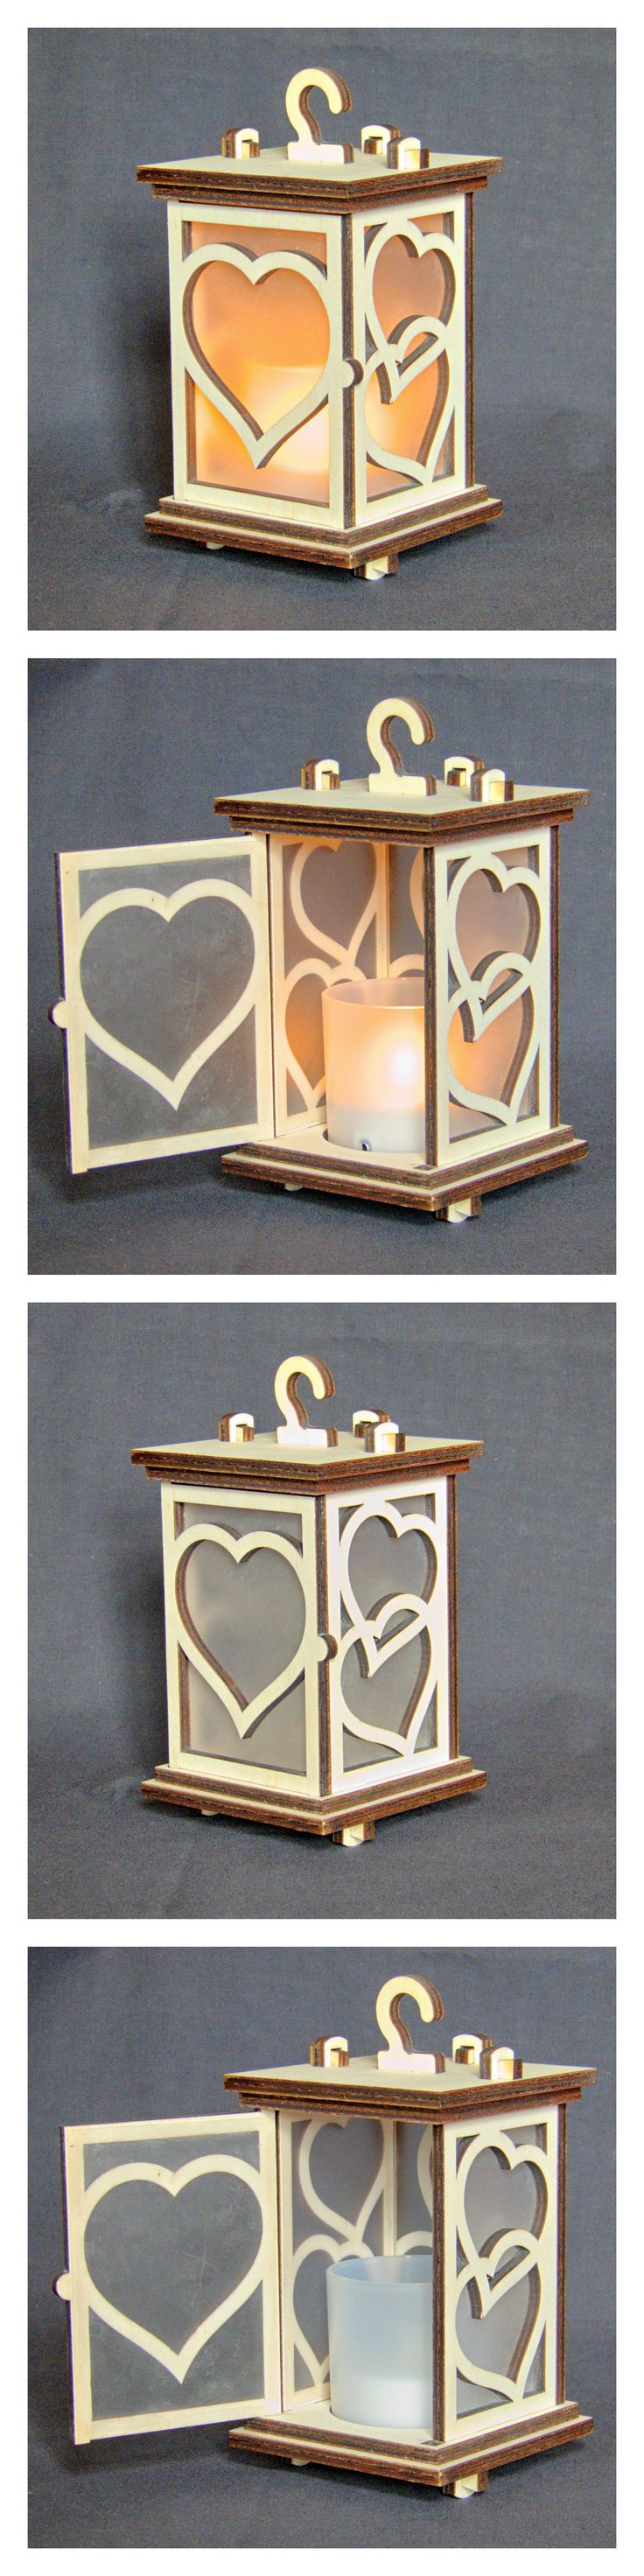 Larger than my tea light lanterns at 18cm (about 7 inches) tall including the hook.